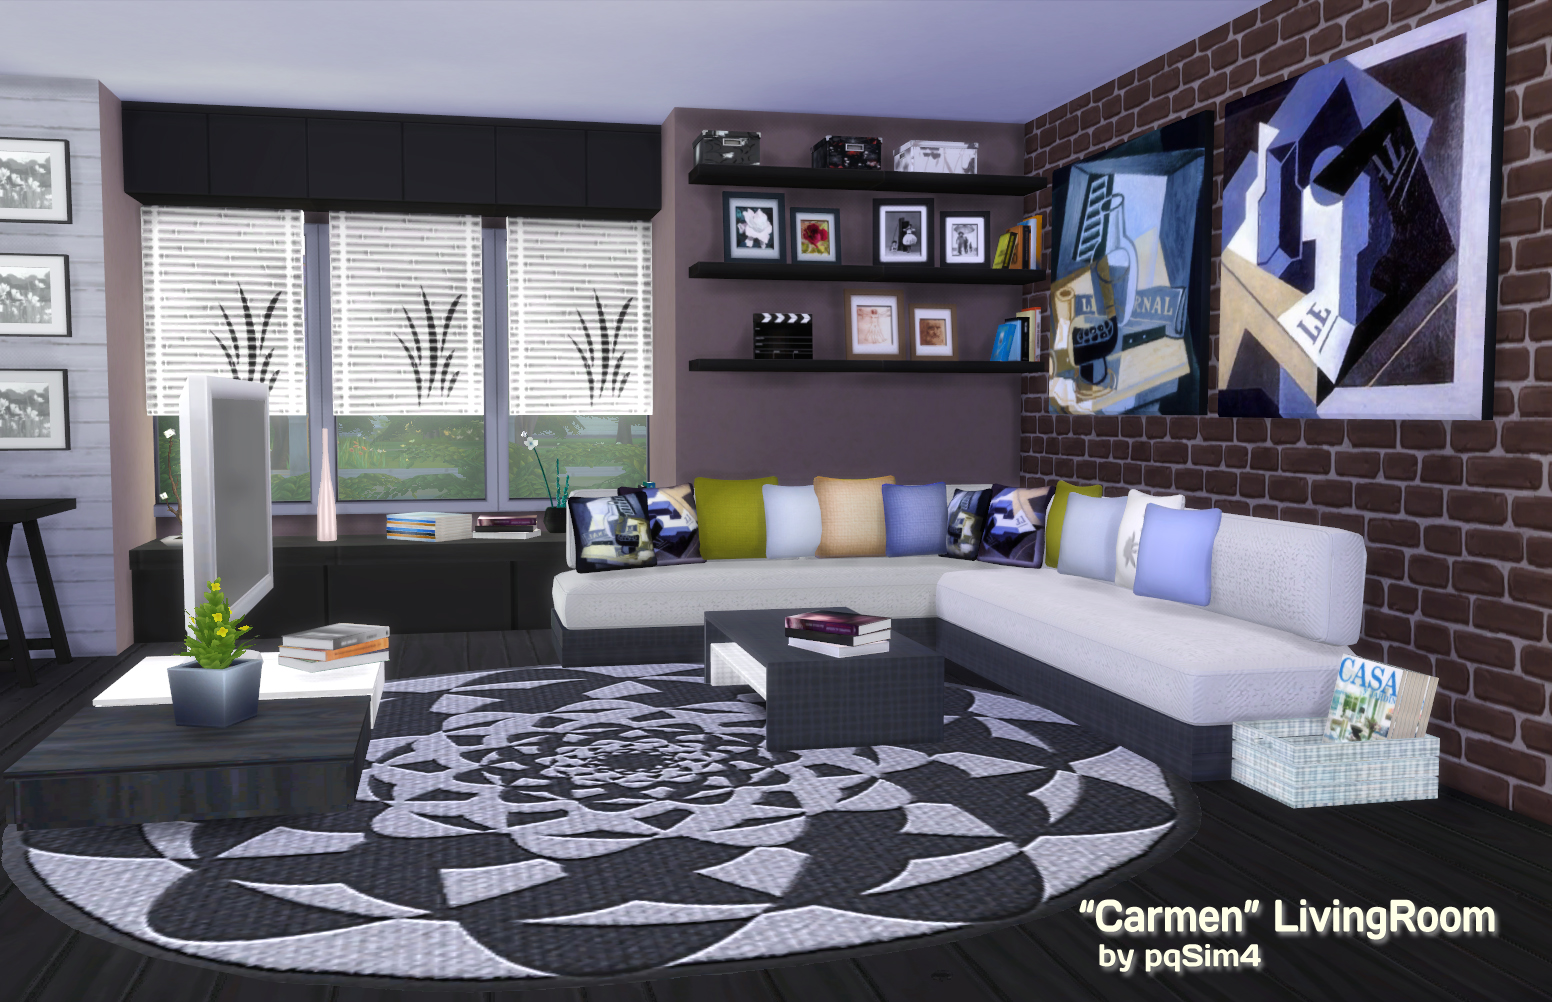 My sims 4 blog carmen living room set by pqsim4 for Salon moderne sims 4